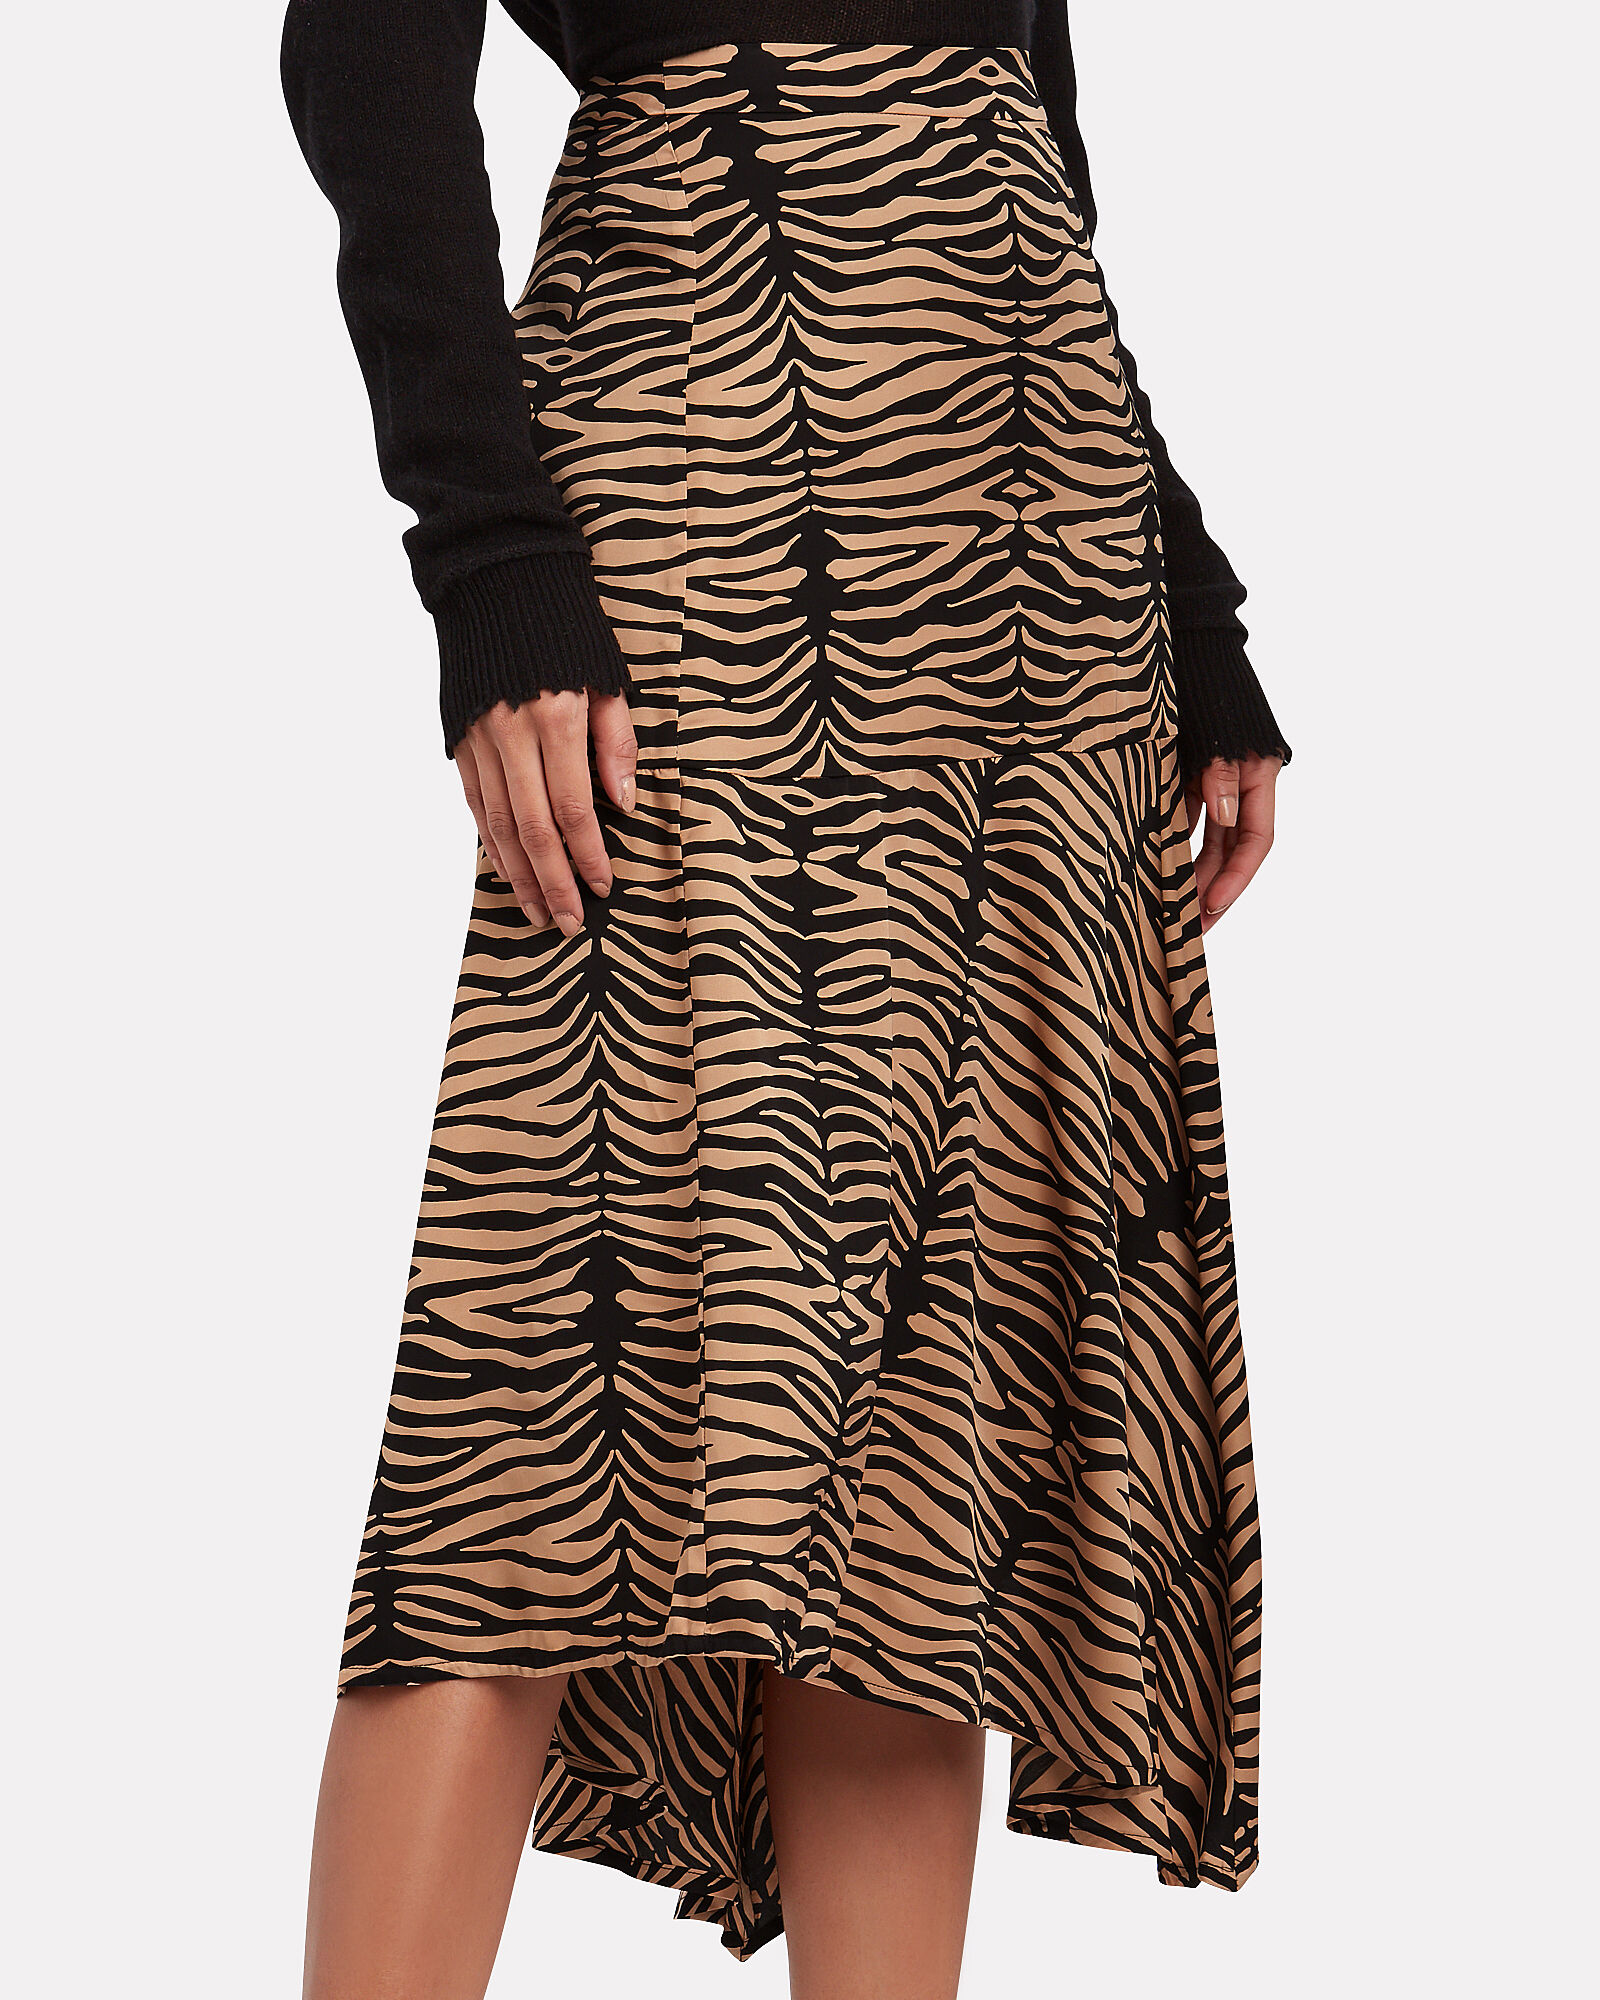 Key Asymmetric Zebra Skirt, MULTI, hi-res